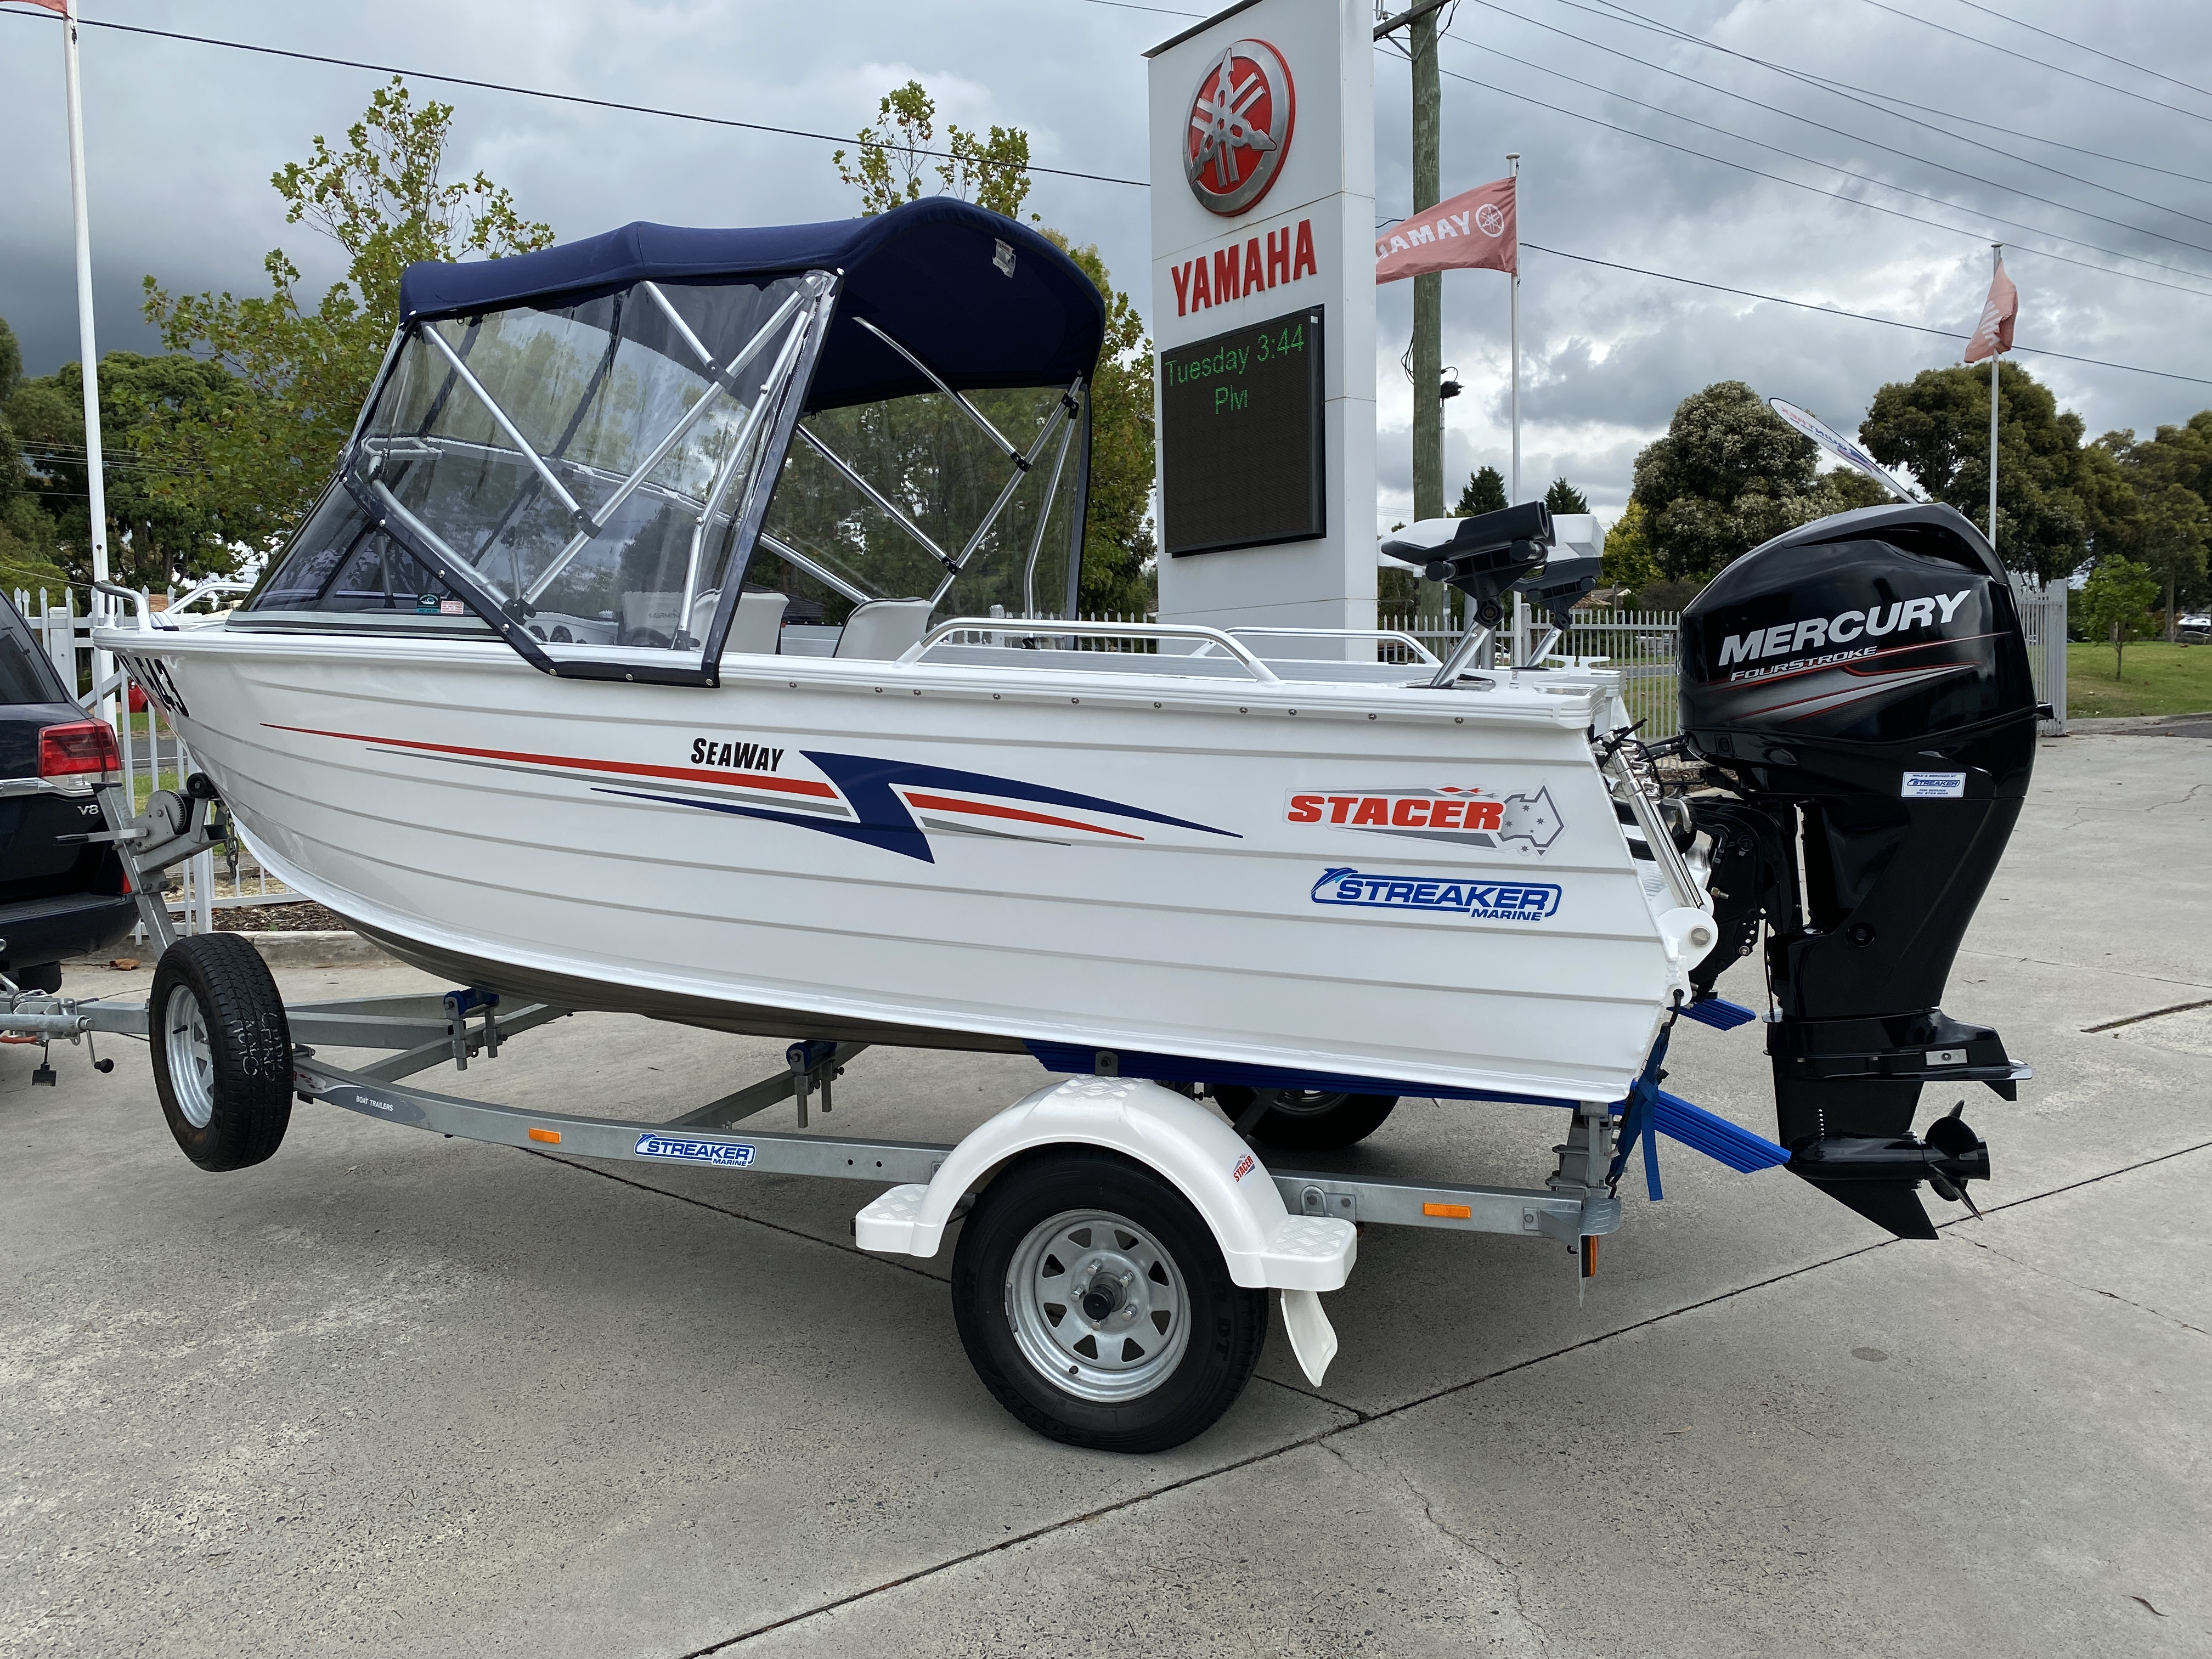 Second hand Stacer at Streaker Marine